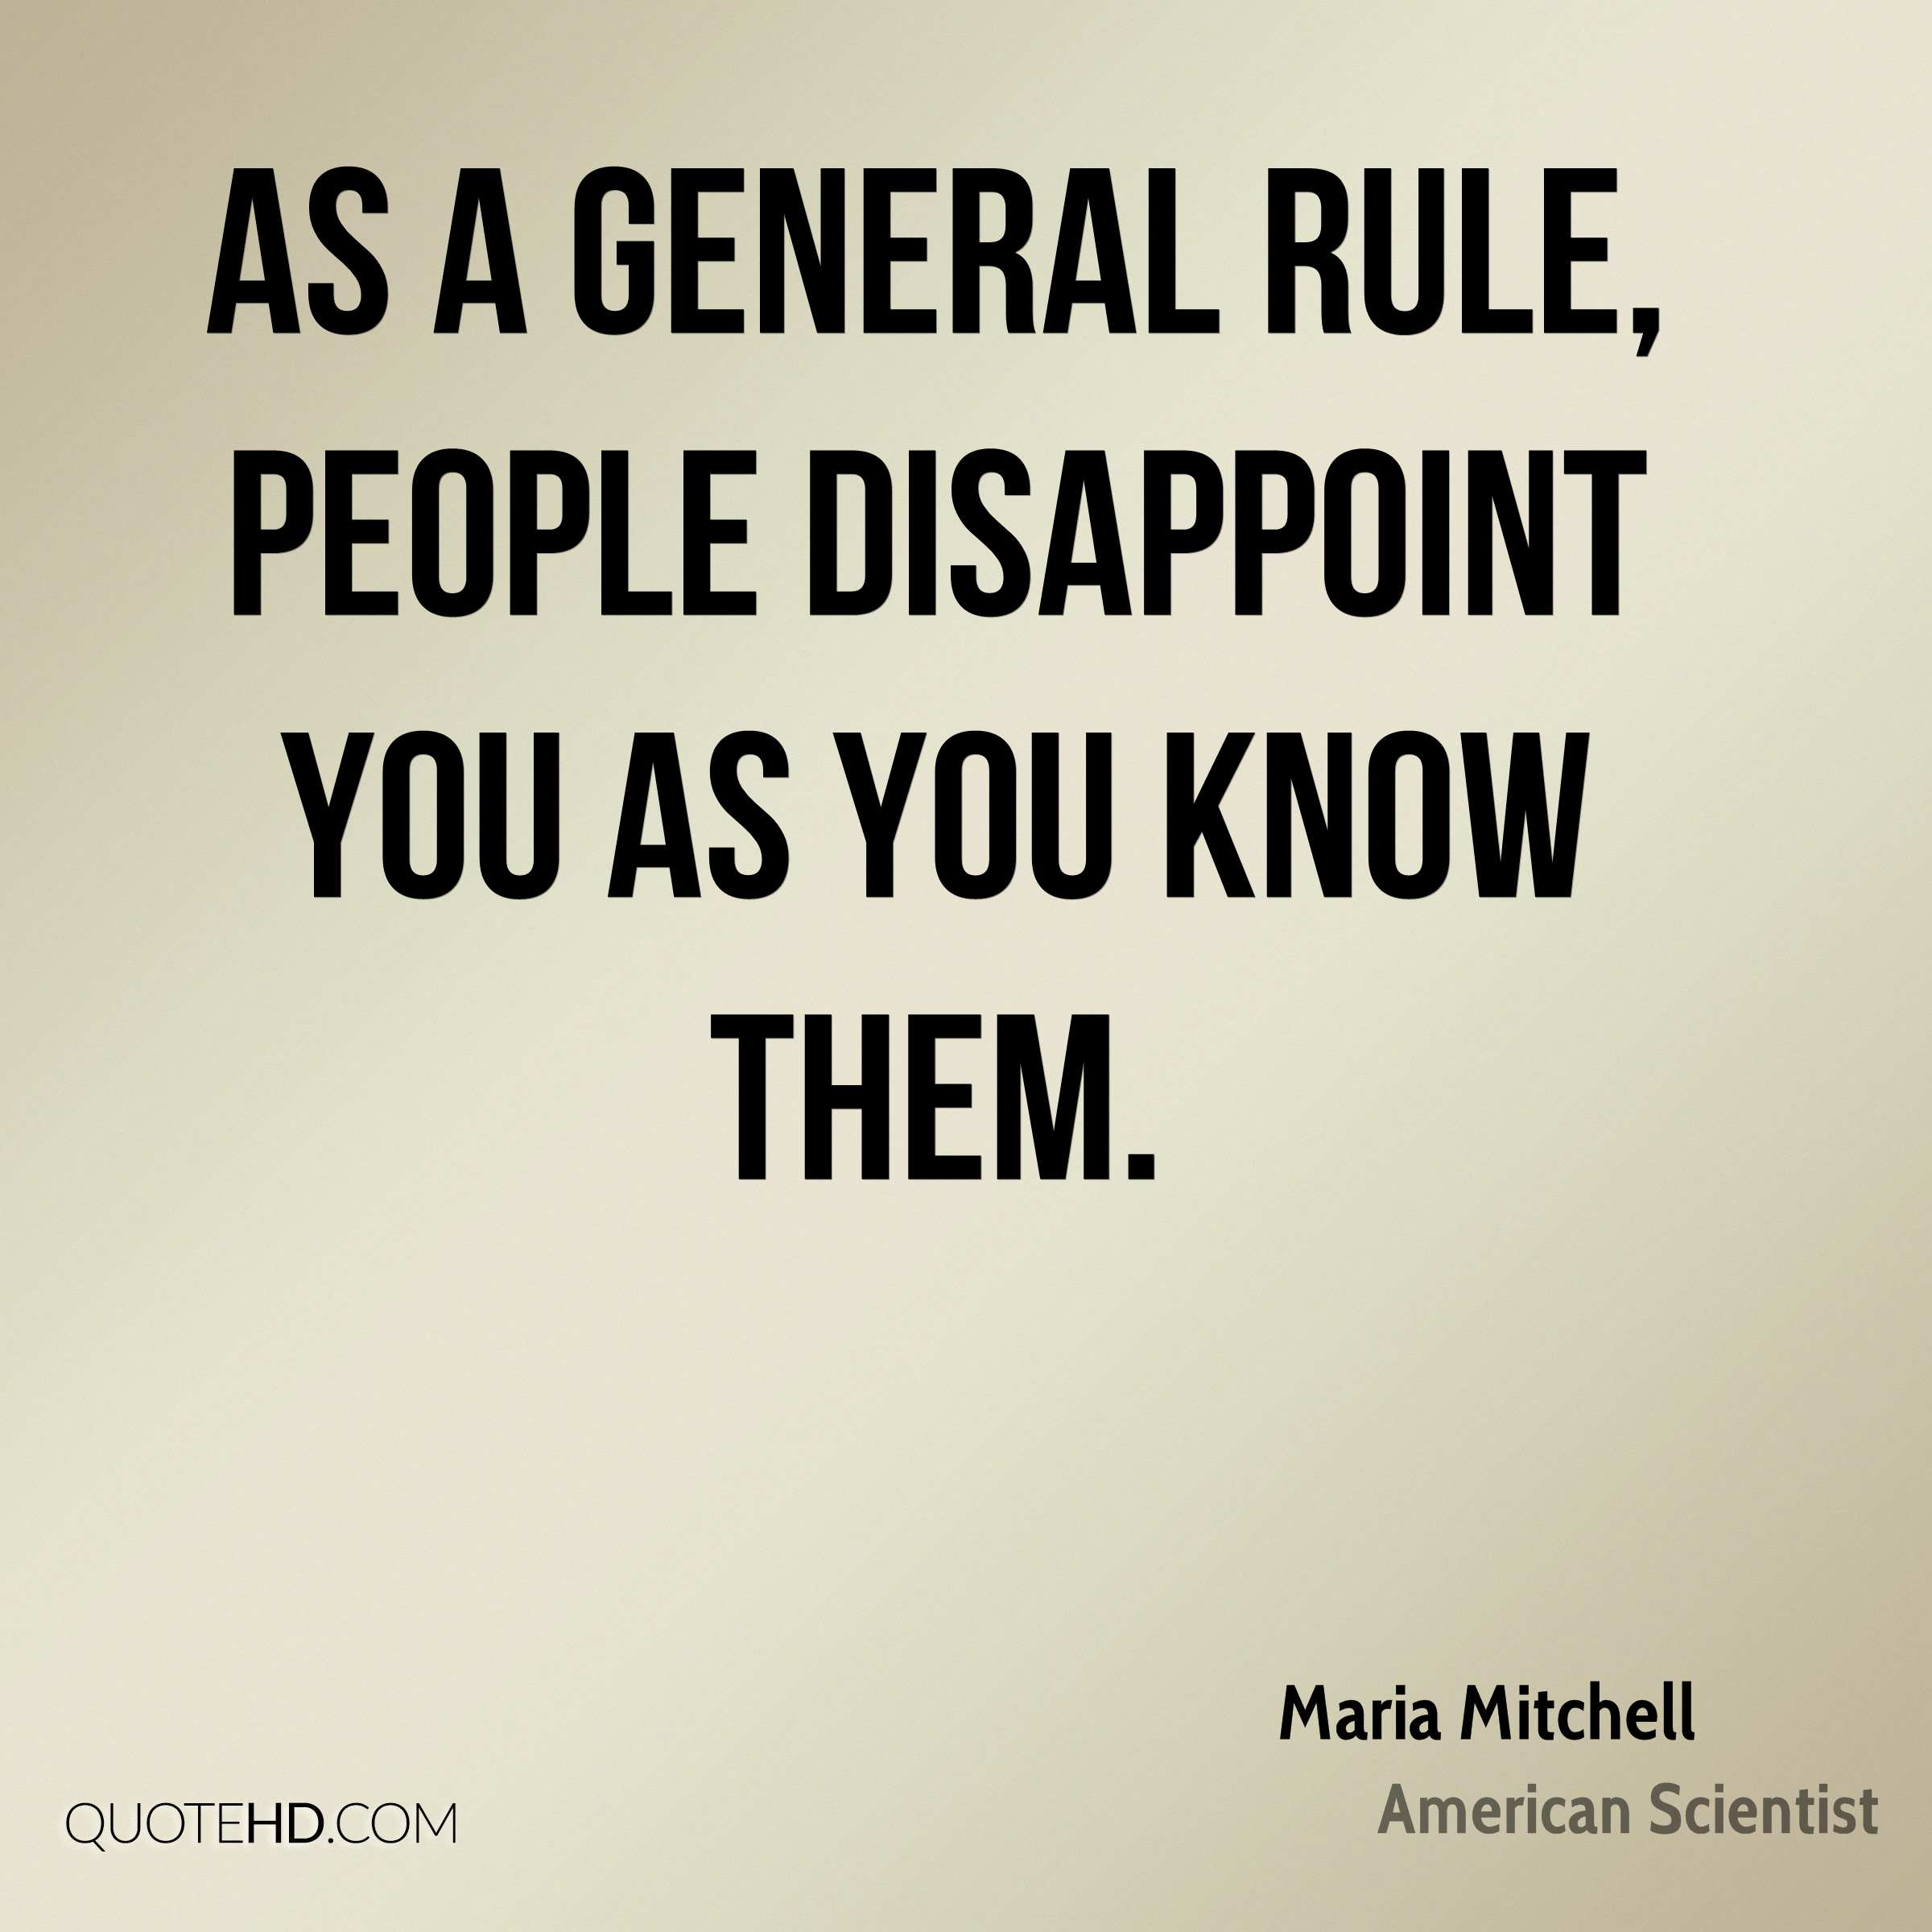 As a general rule, people disappoint you as you know them.